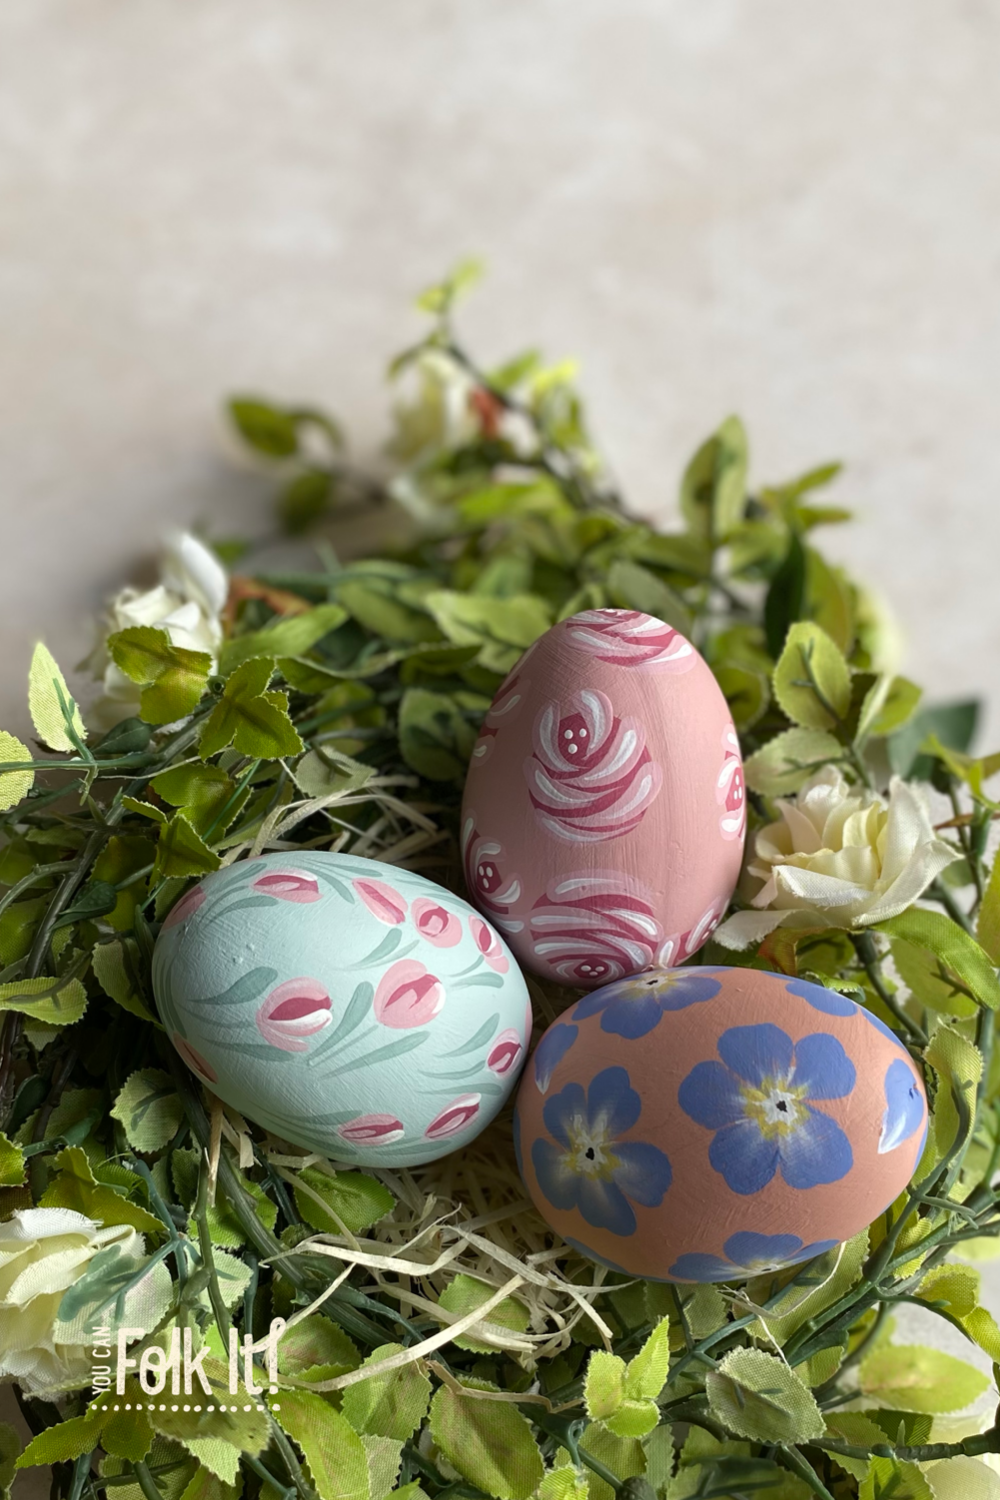 A trio of easter eggs hand painted with designs from You Can Folk It